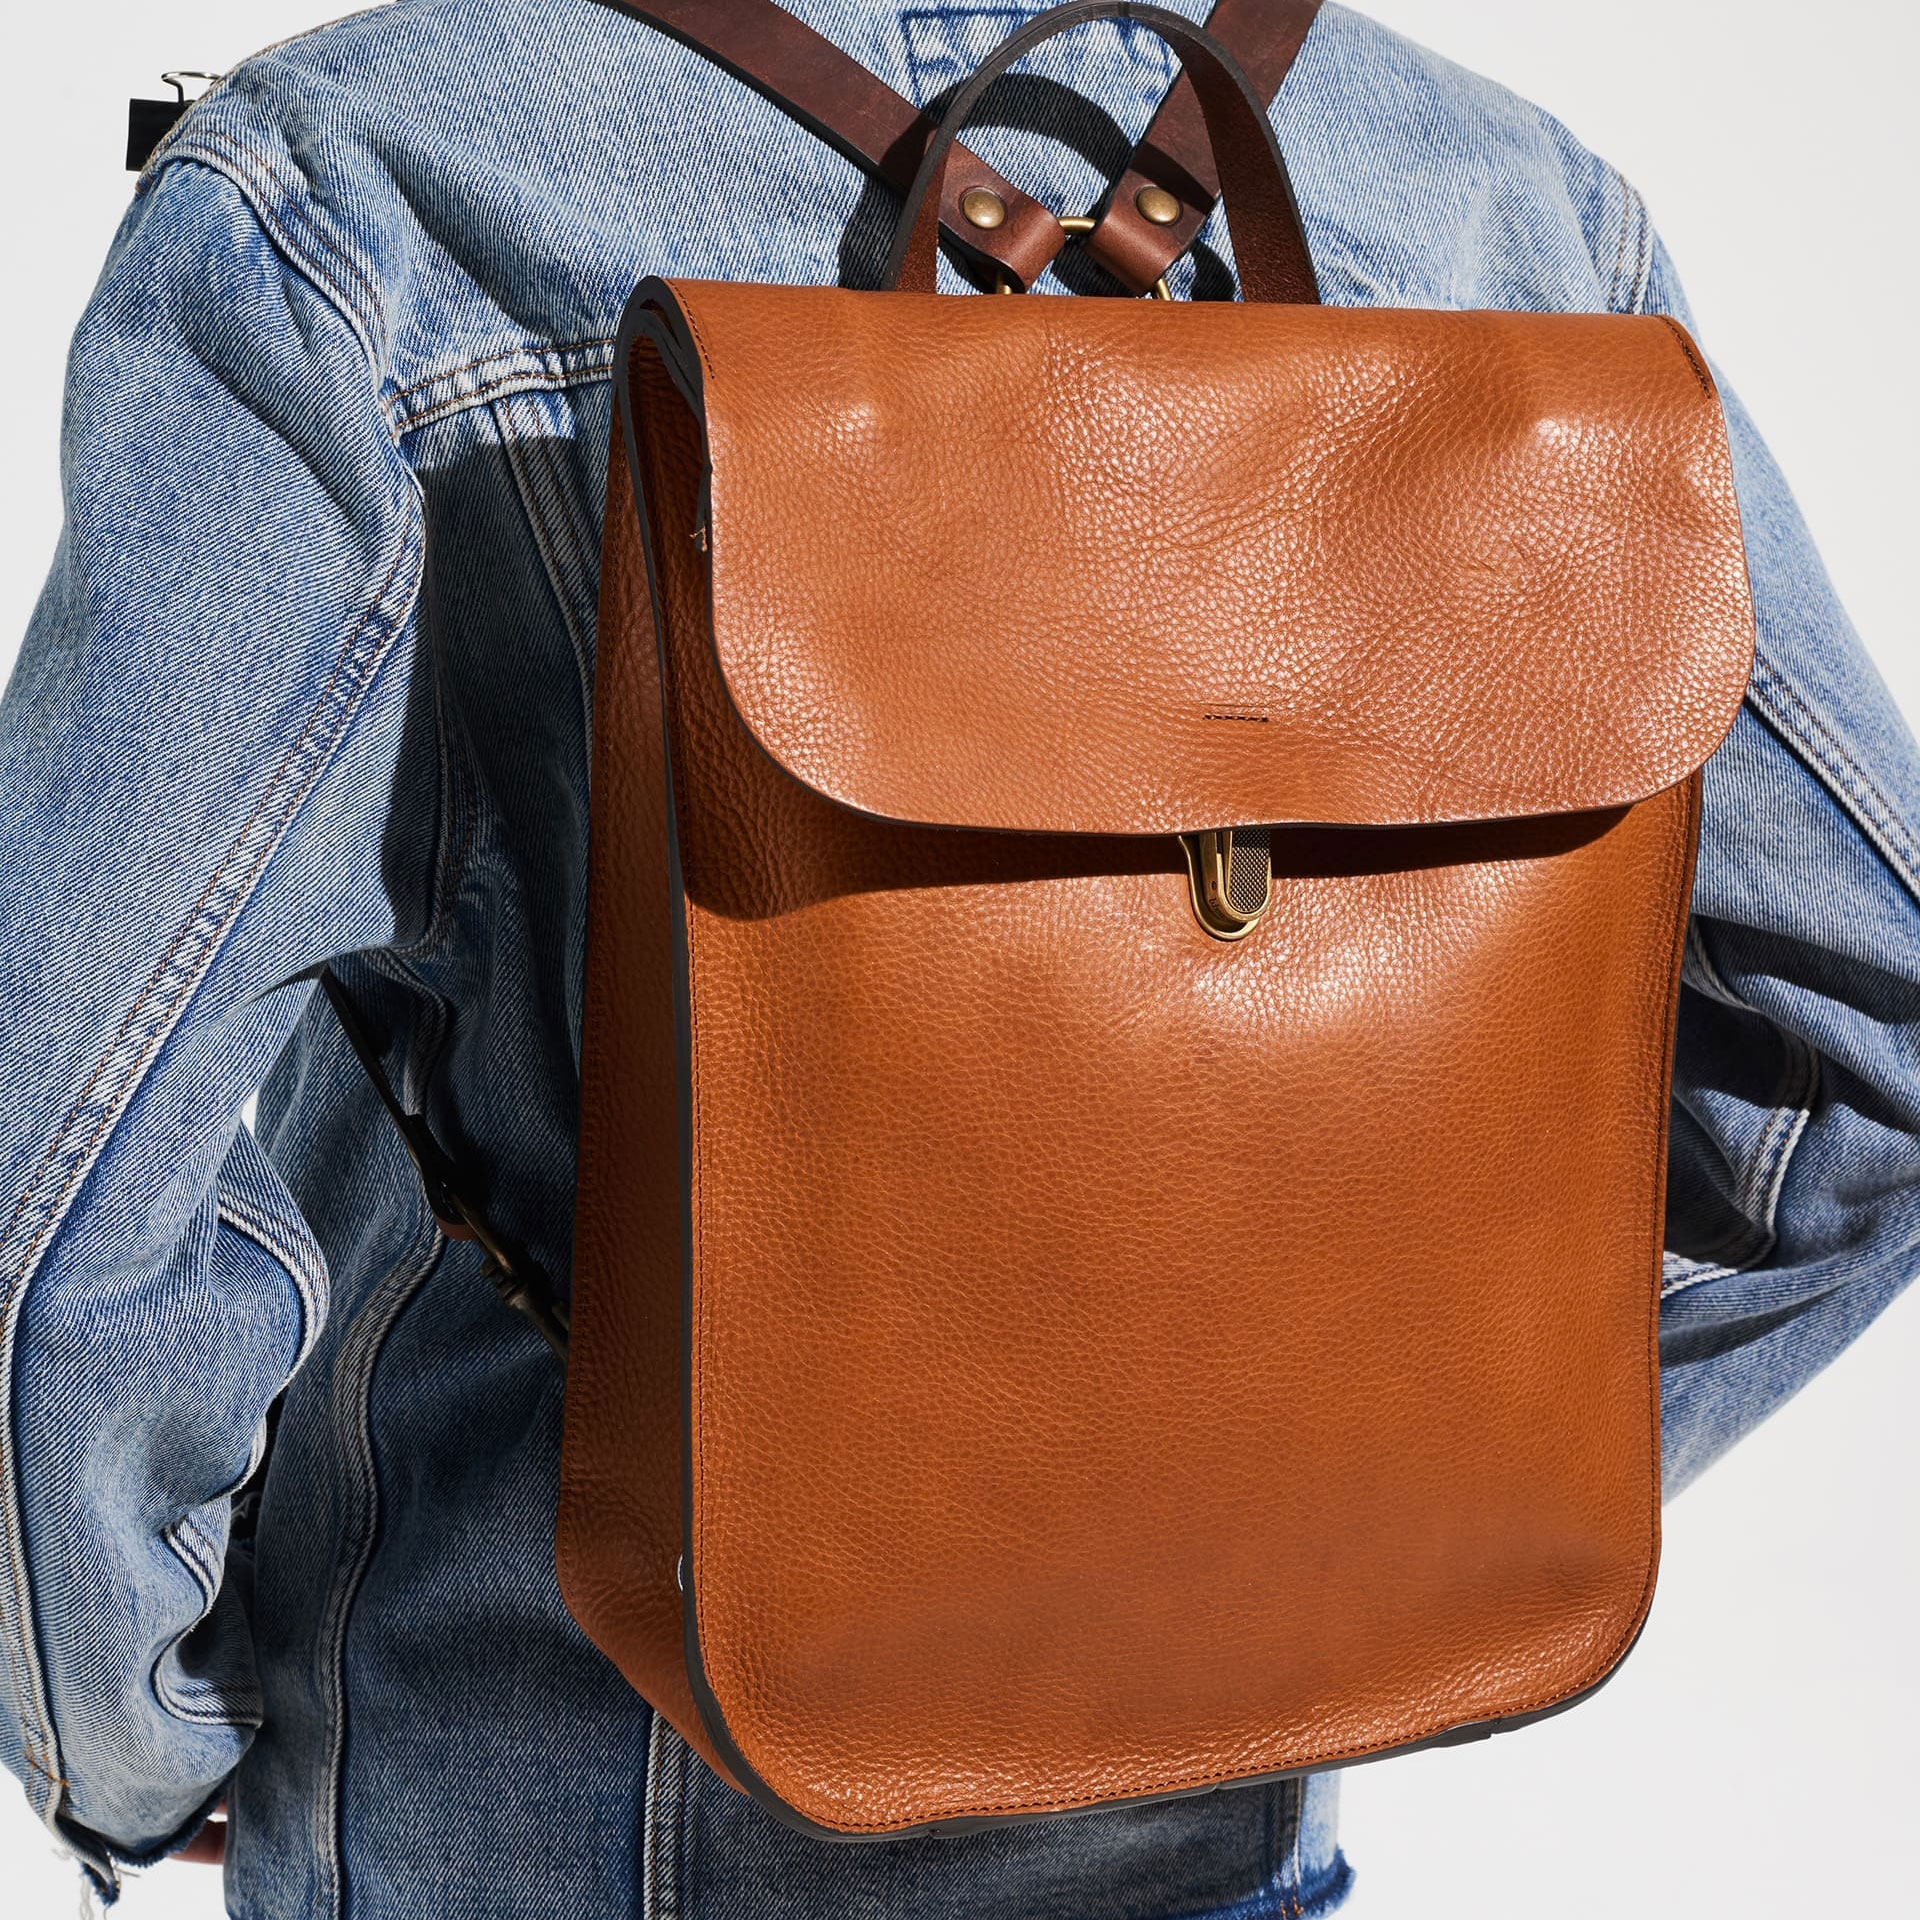 Puncho leather backpack - Navy Blue / E Pure (image n°6)